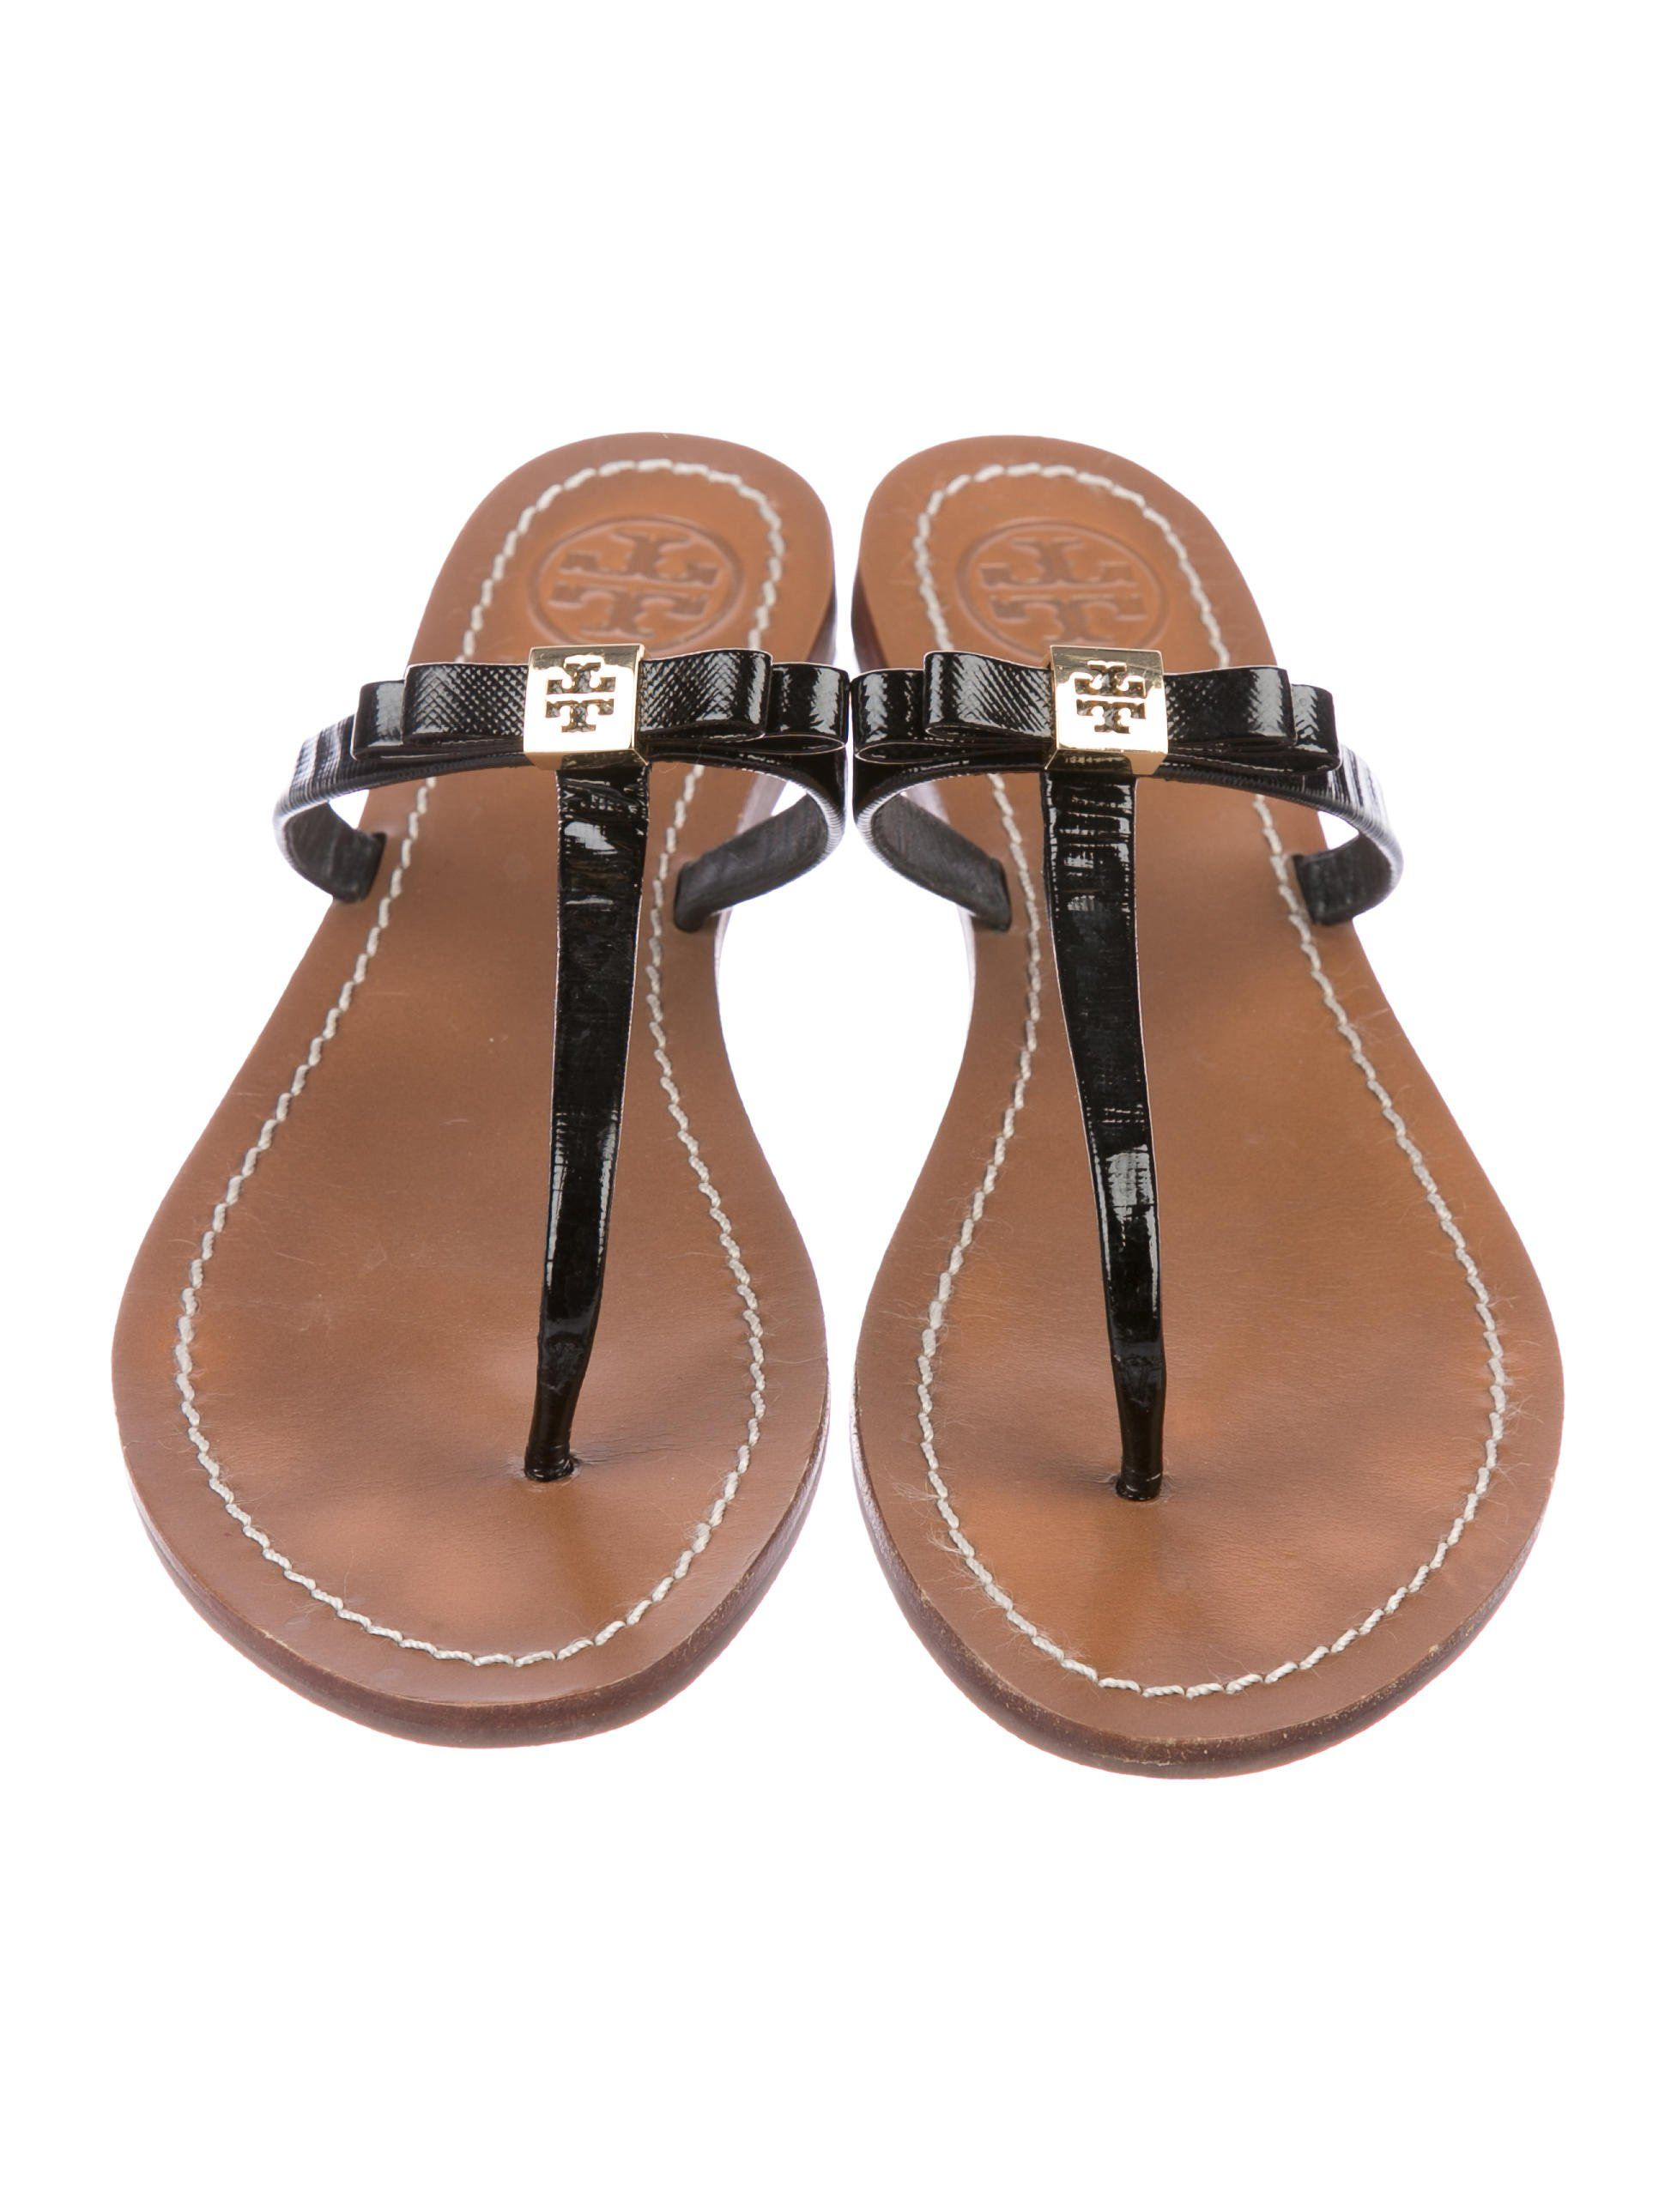 932eeac7a9cc22 Black patent leather Tory Burch thong sandals with bow accents featuring  gold-tone logo embellishments at uppers and stacked heels. Size not listed